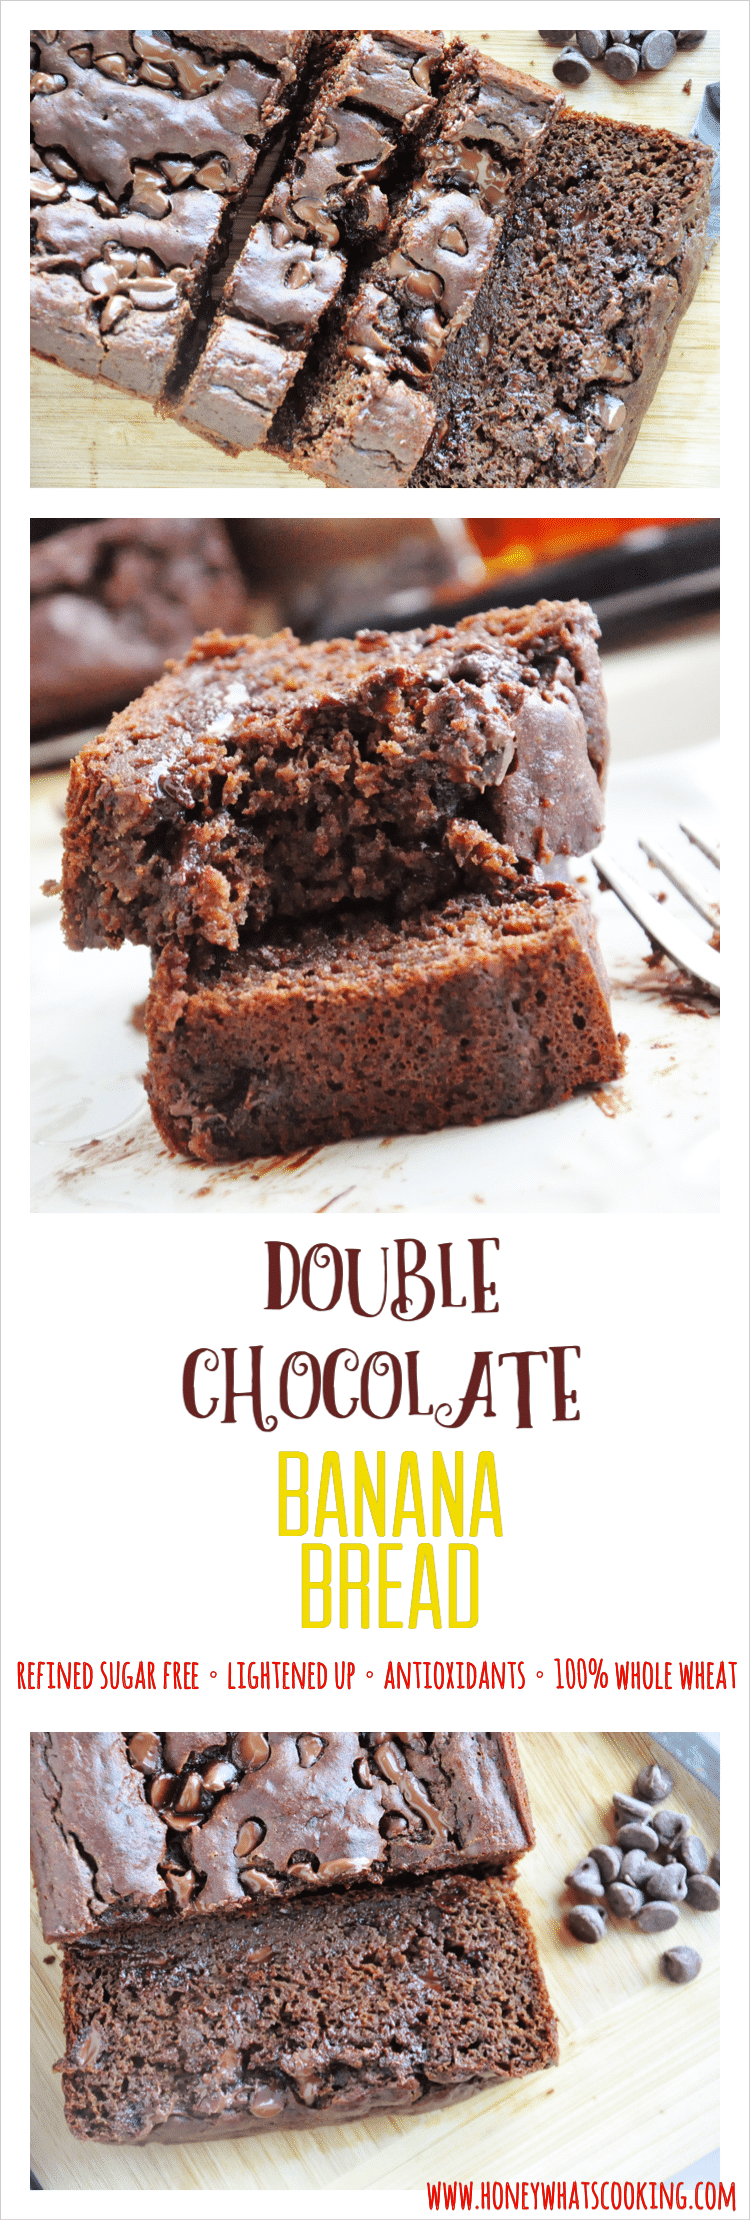 Double Chocolate Banana Bread pin